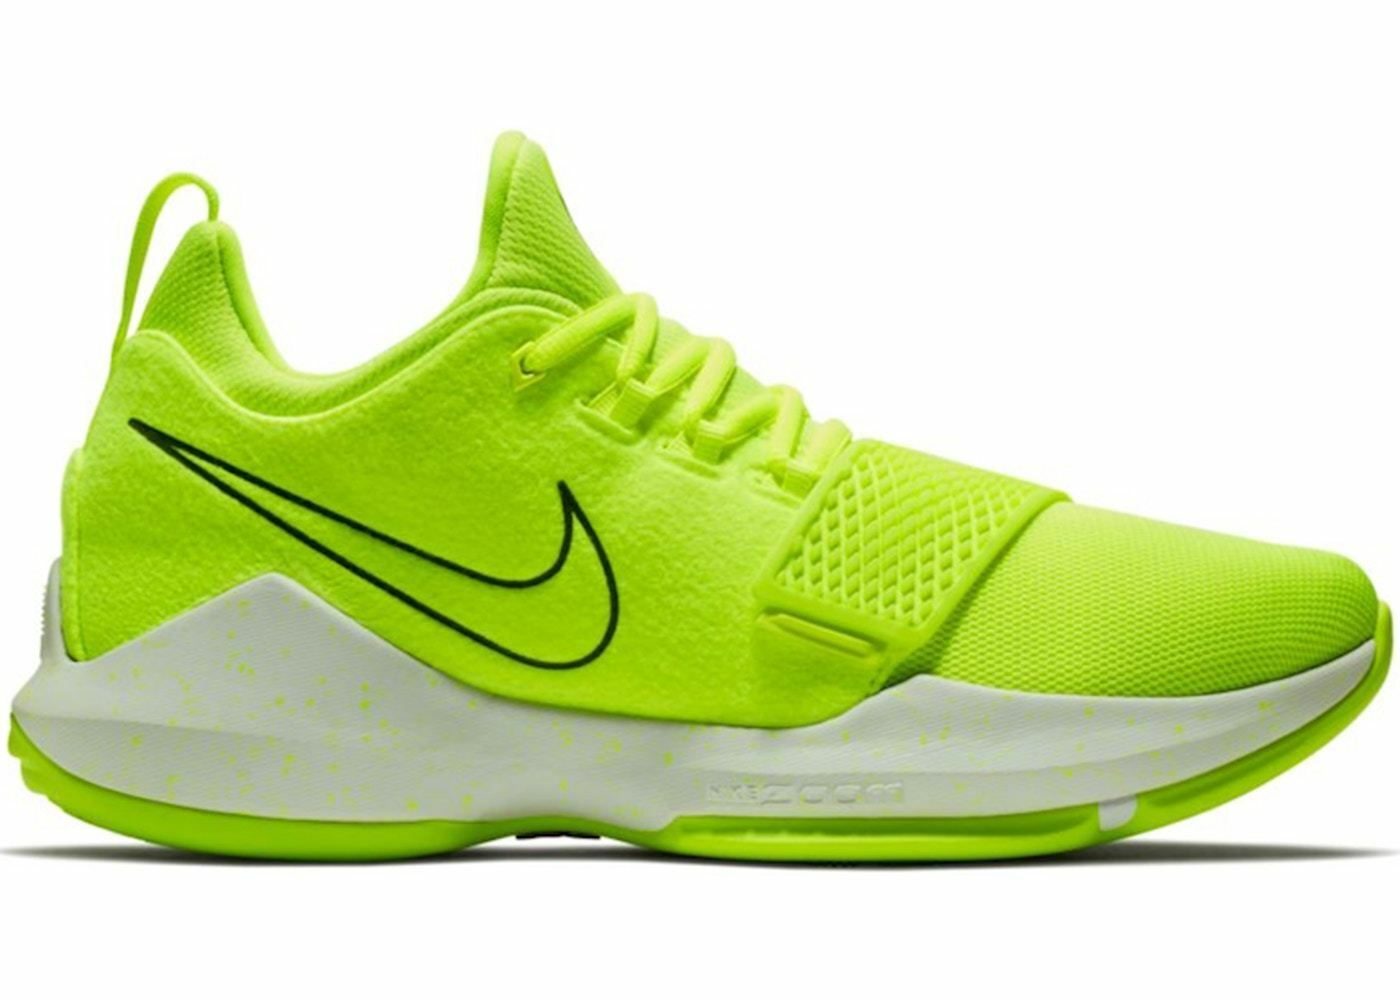 Nike PG 1 Paul George TENNIS BALL Volt NEON Yellow Green White 95 Men 12.5 Shoes Seasonal price cuts, discount benefits